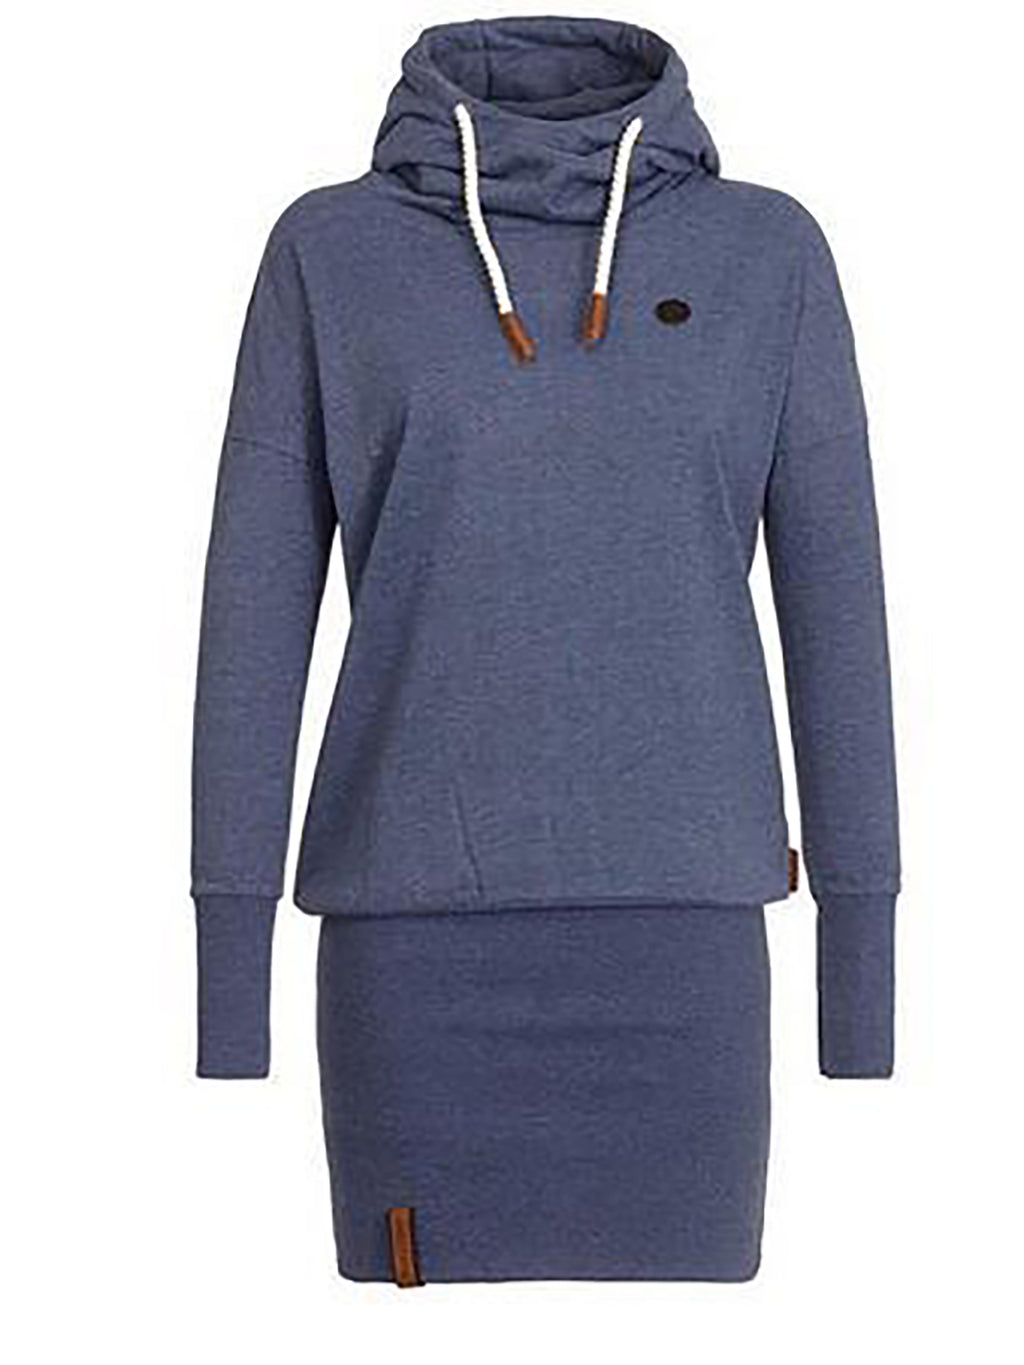 Navy Blue Basic Shift Casual hoodie Dress